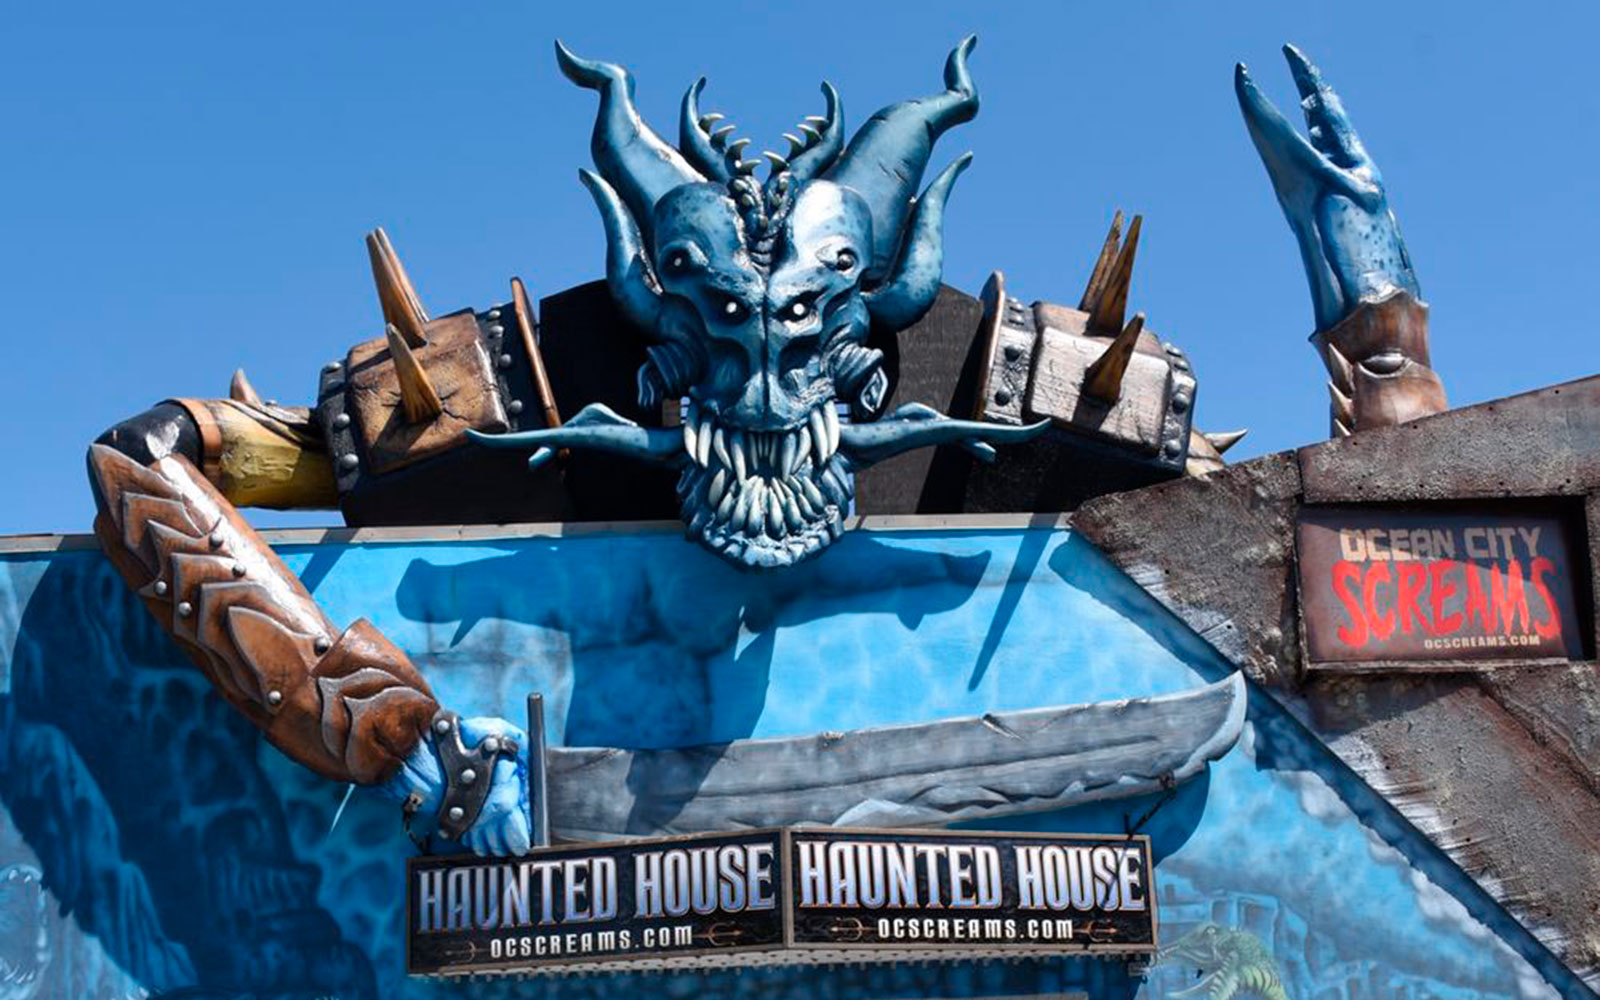 Ocean City Screams Haunted House, Ocean City, Maryland